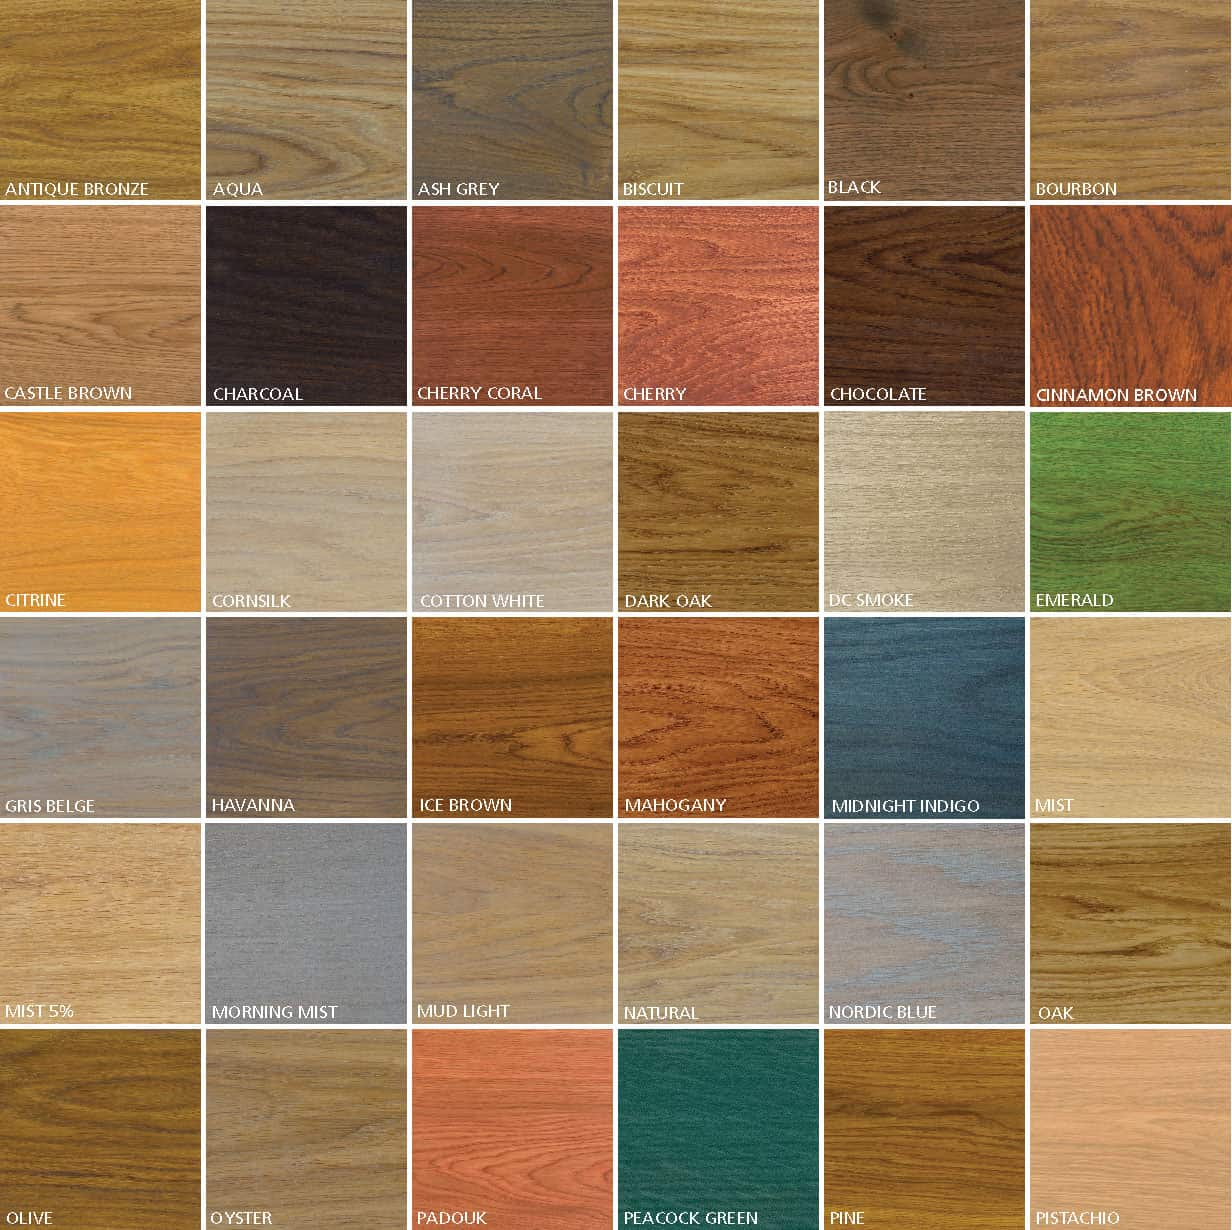 Rubio Monocoat Oil Plus Wood Finish And Protection